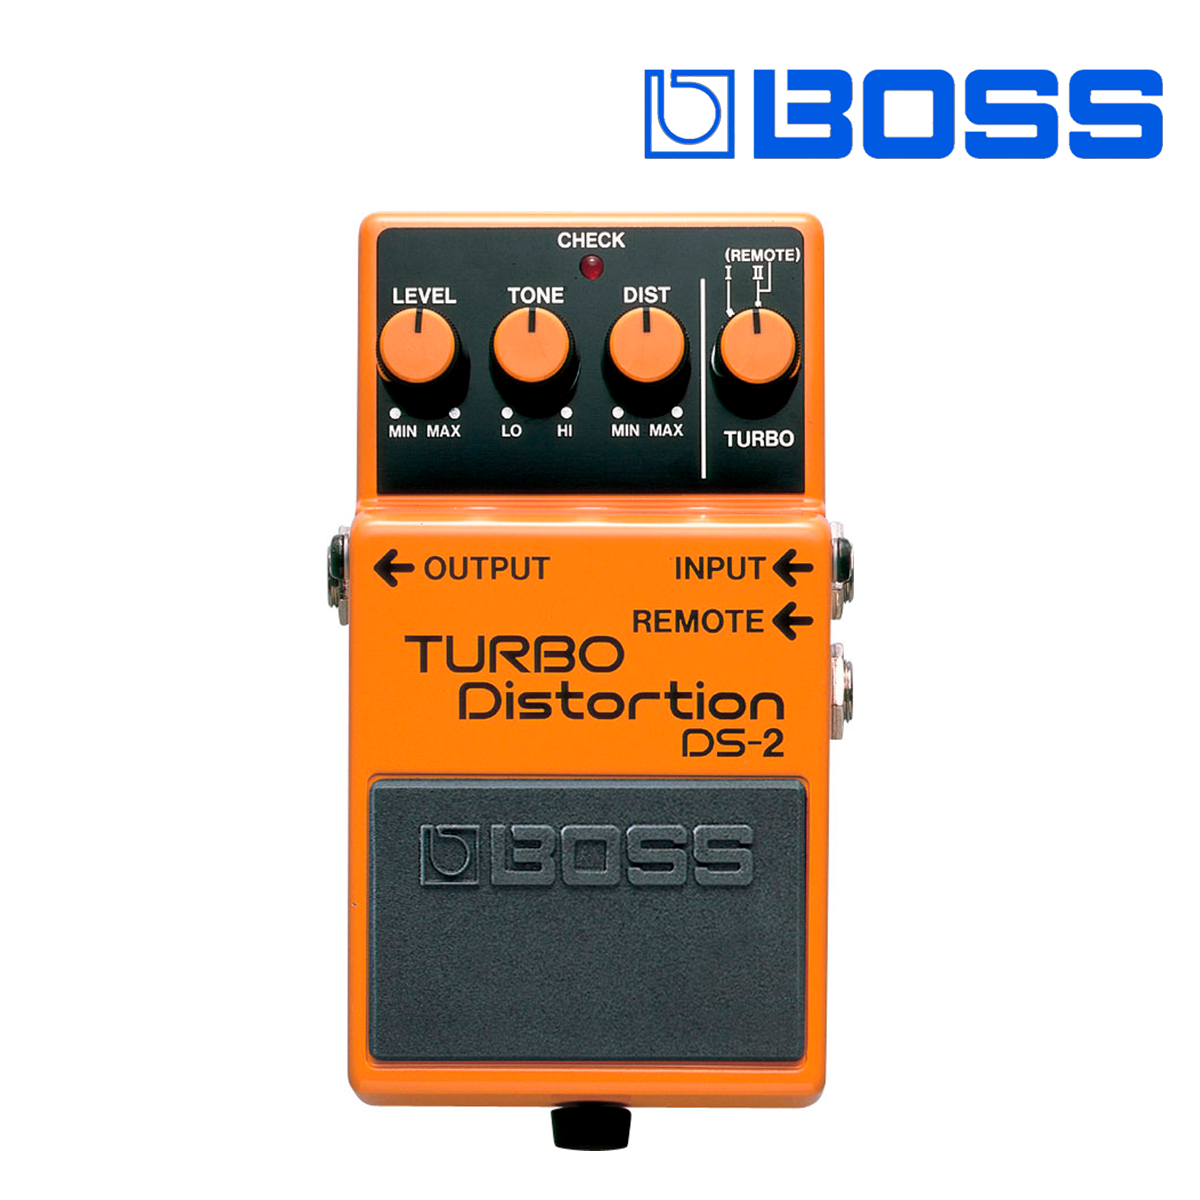 PEDAL TURBO DISTORTION W/REMOT DS-2